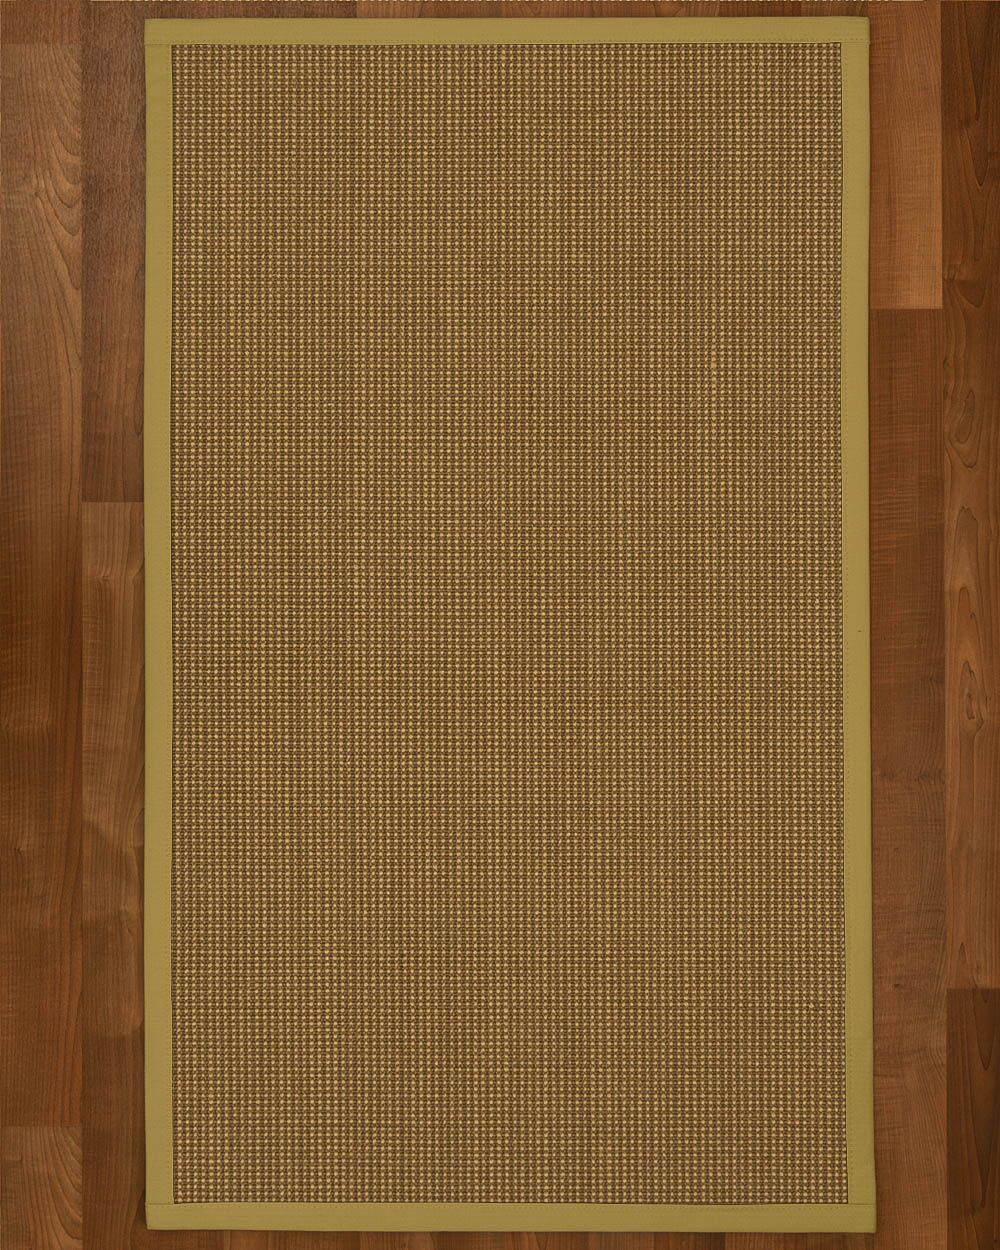 Asther Hand-Woven Brown Area Rug Rug Size: Rectangle 9' X 12'